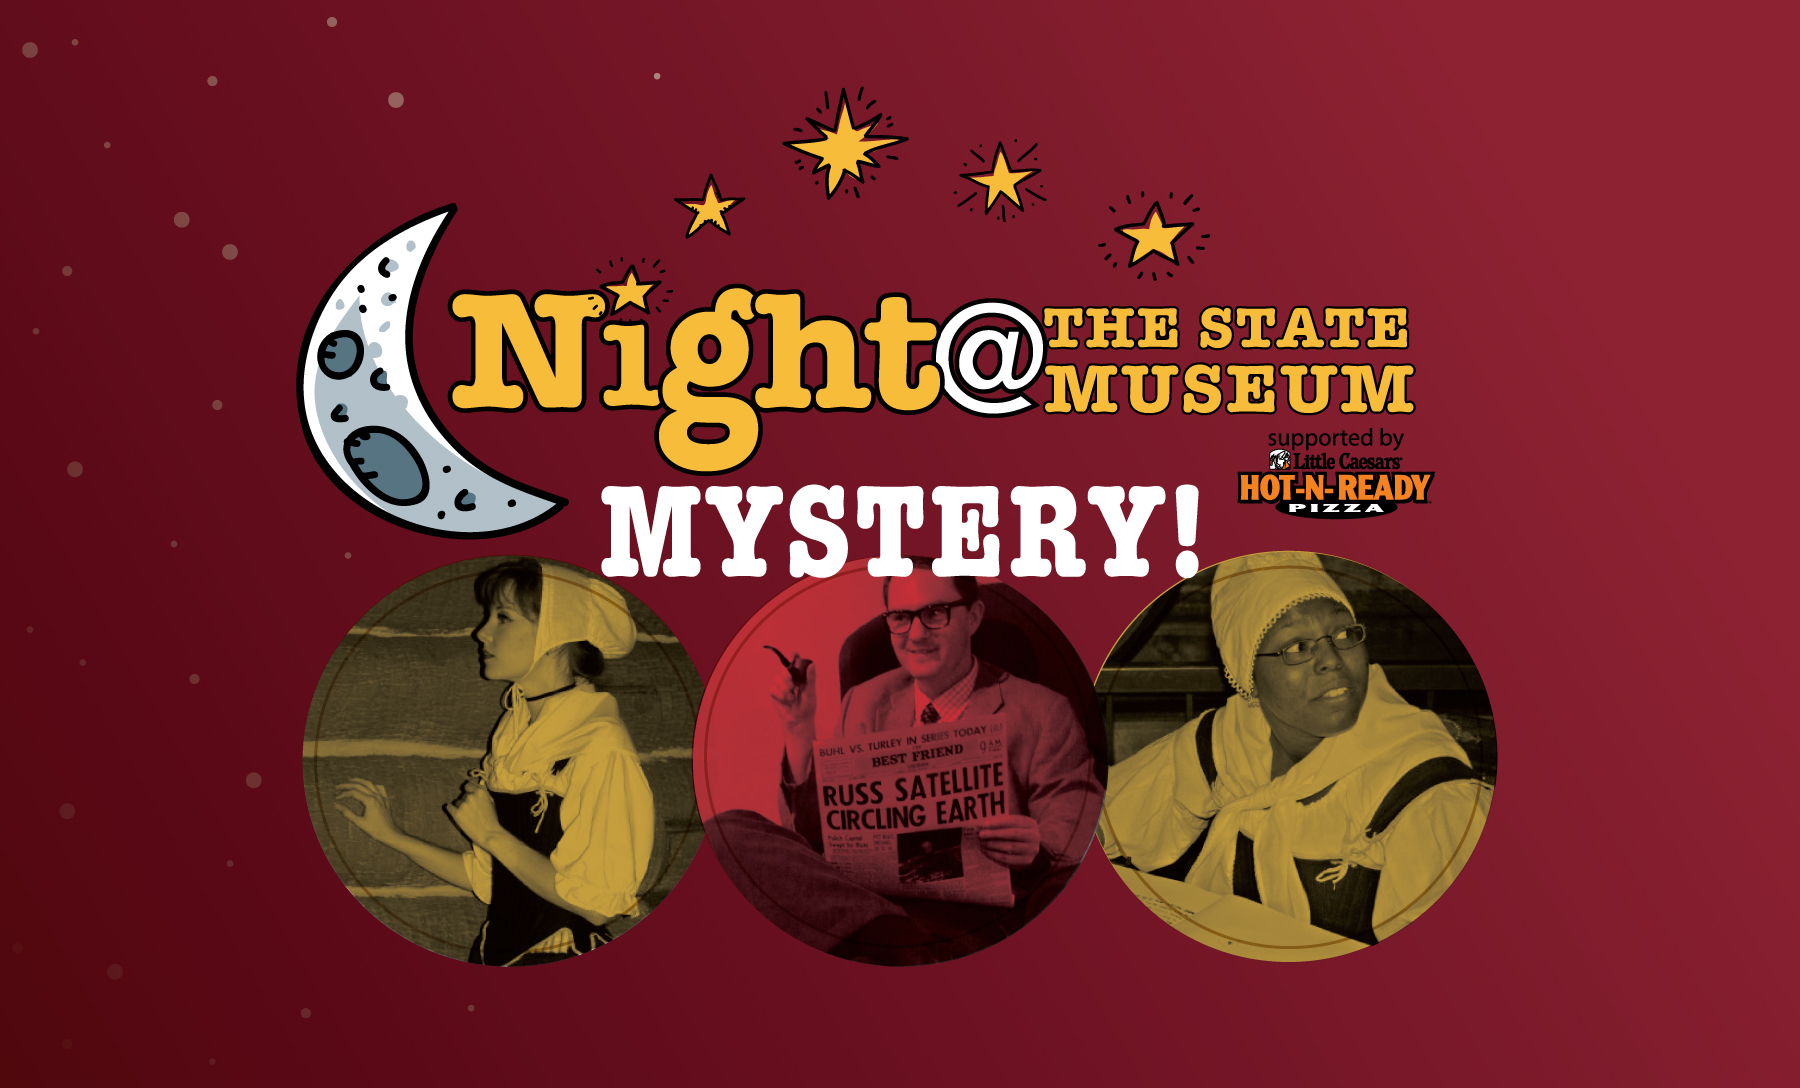 Night at the Museum, South Carolina State Museum, Family Fun